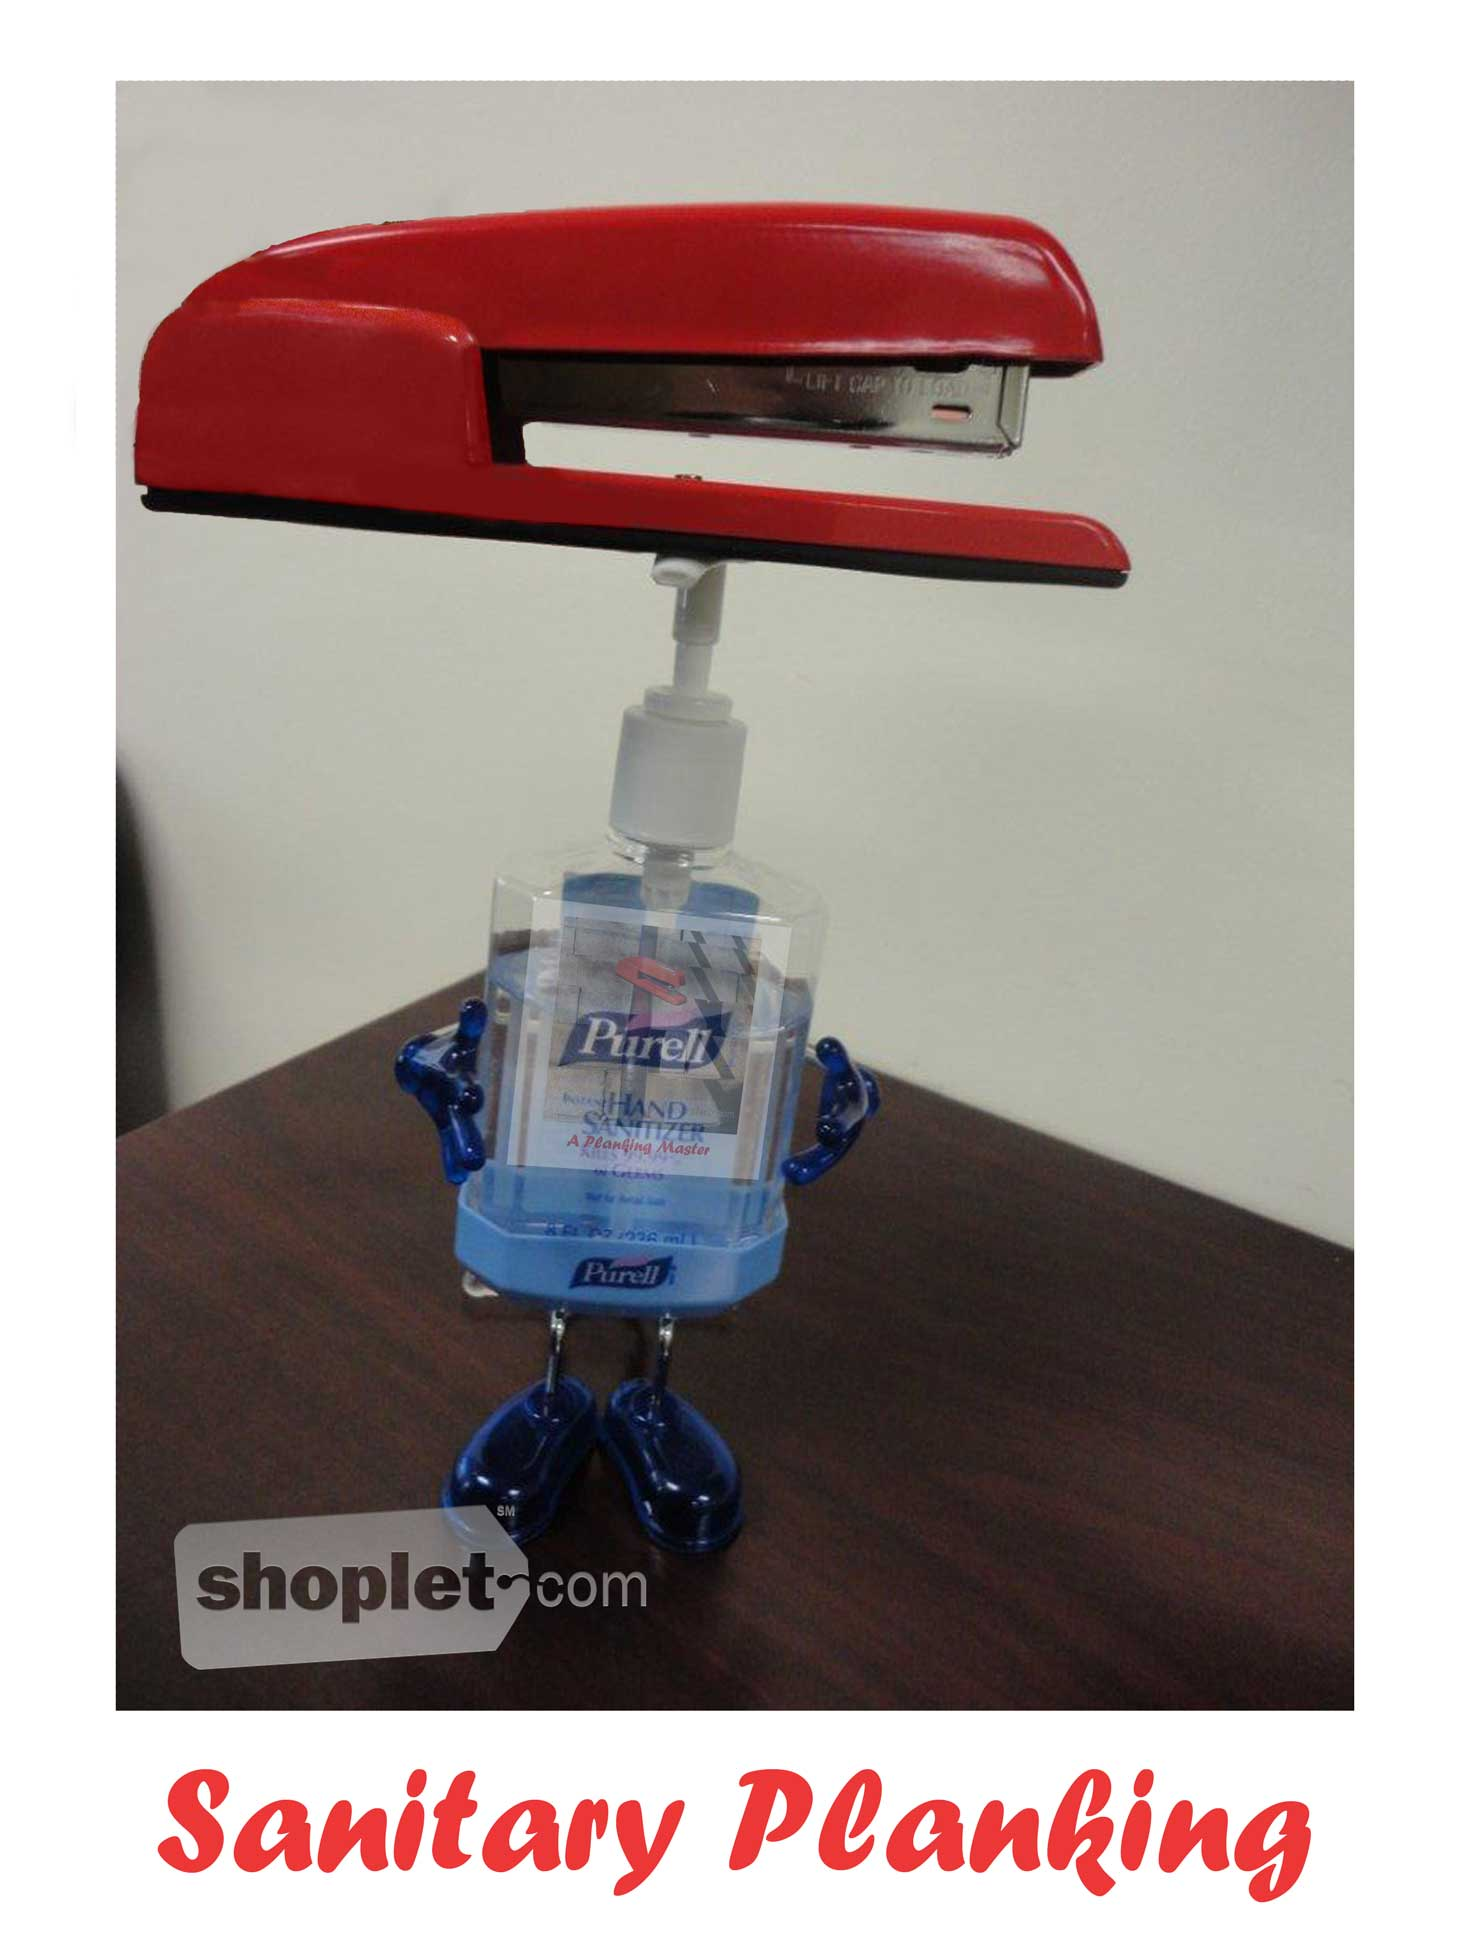 Shoplet Planking Stapler Sanitizer Shoplet Planking Stapler Planks on Purell Hand Sanitizer